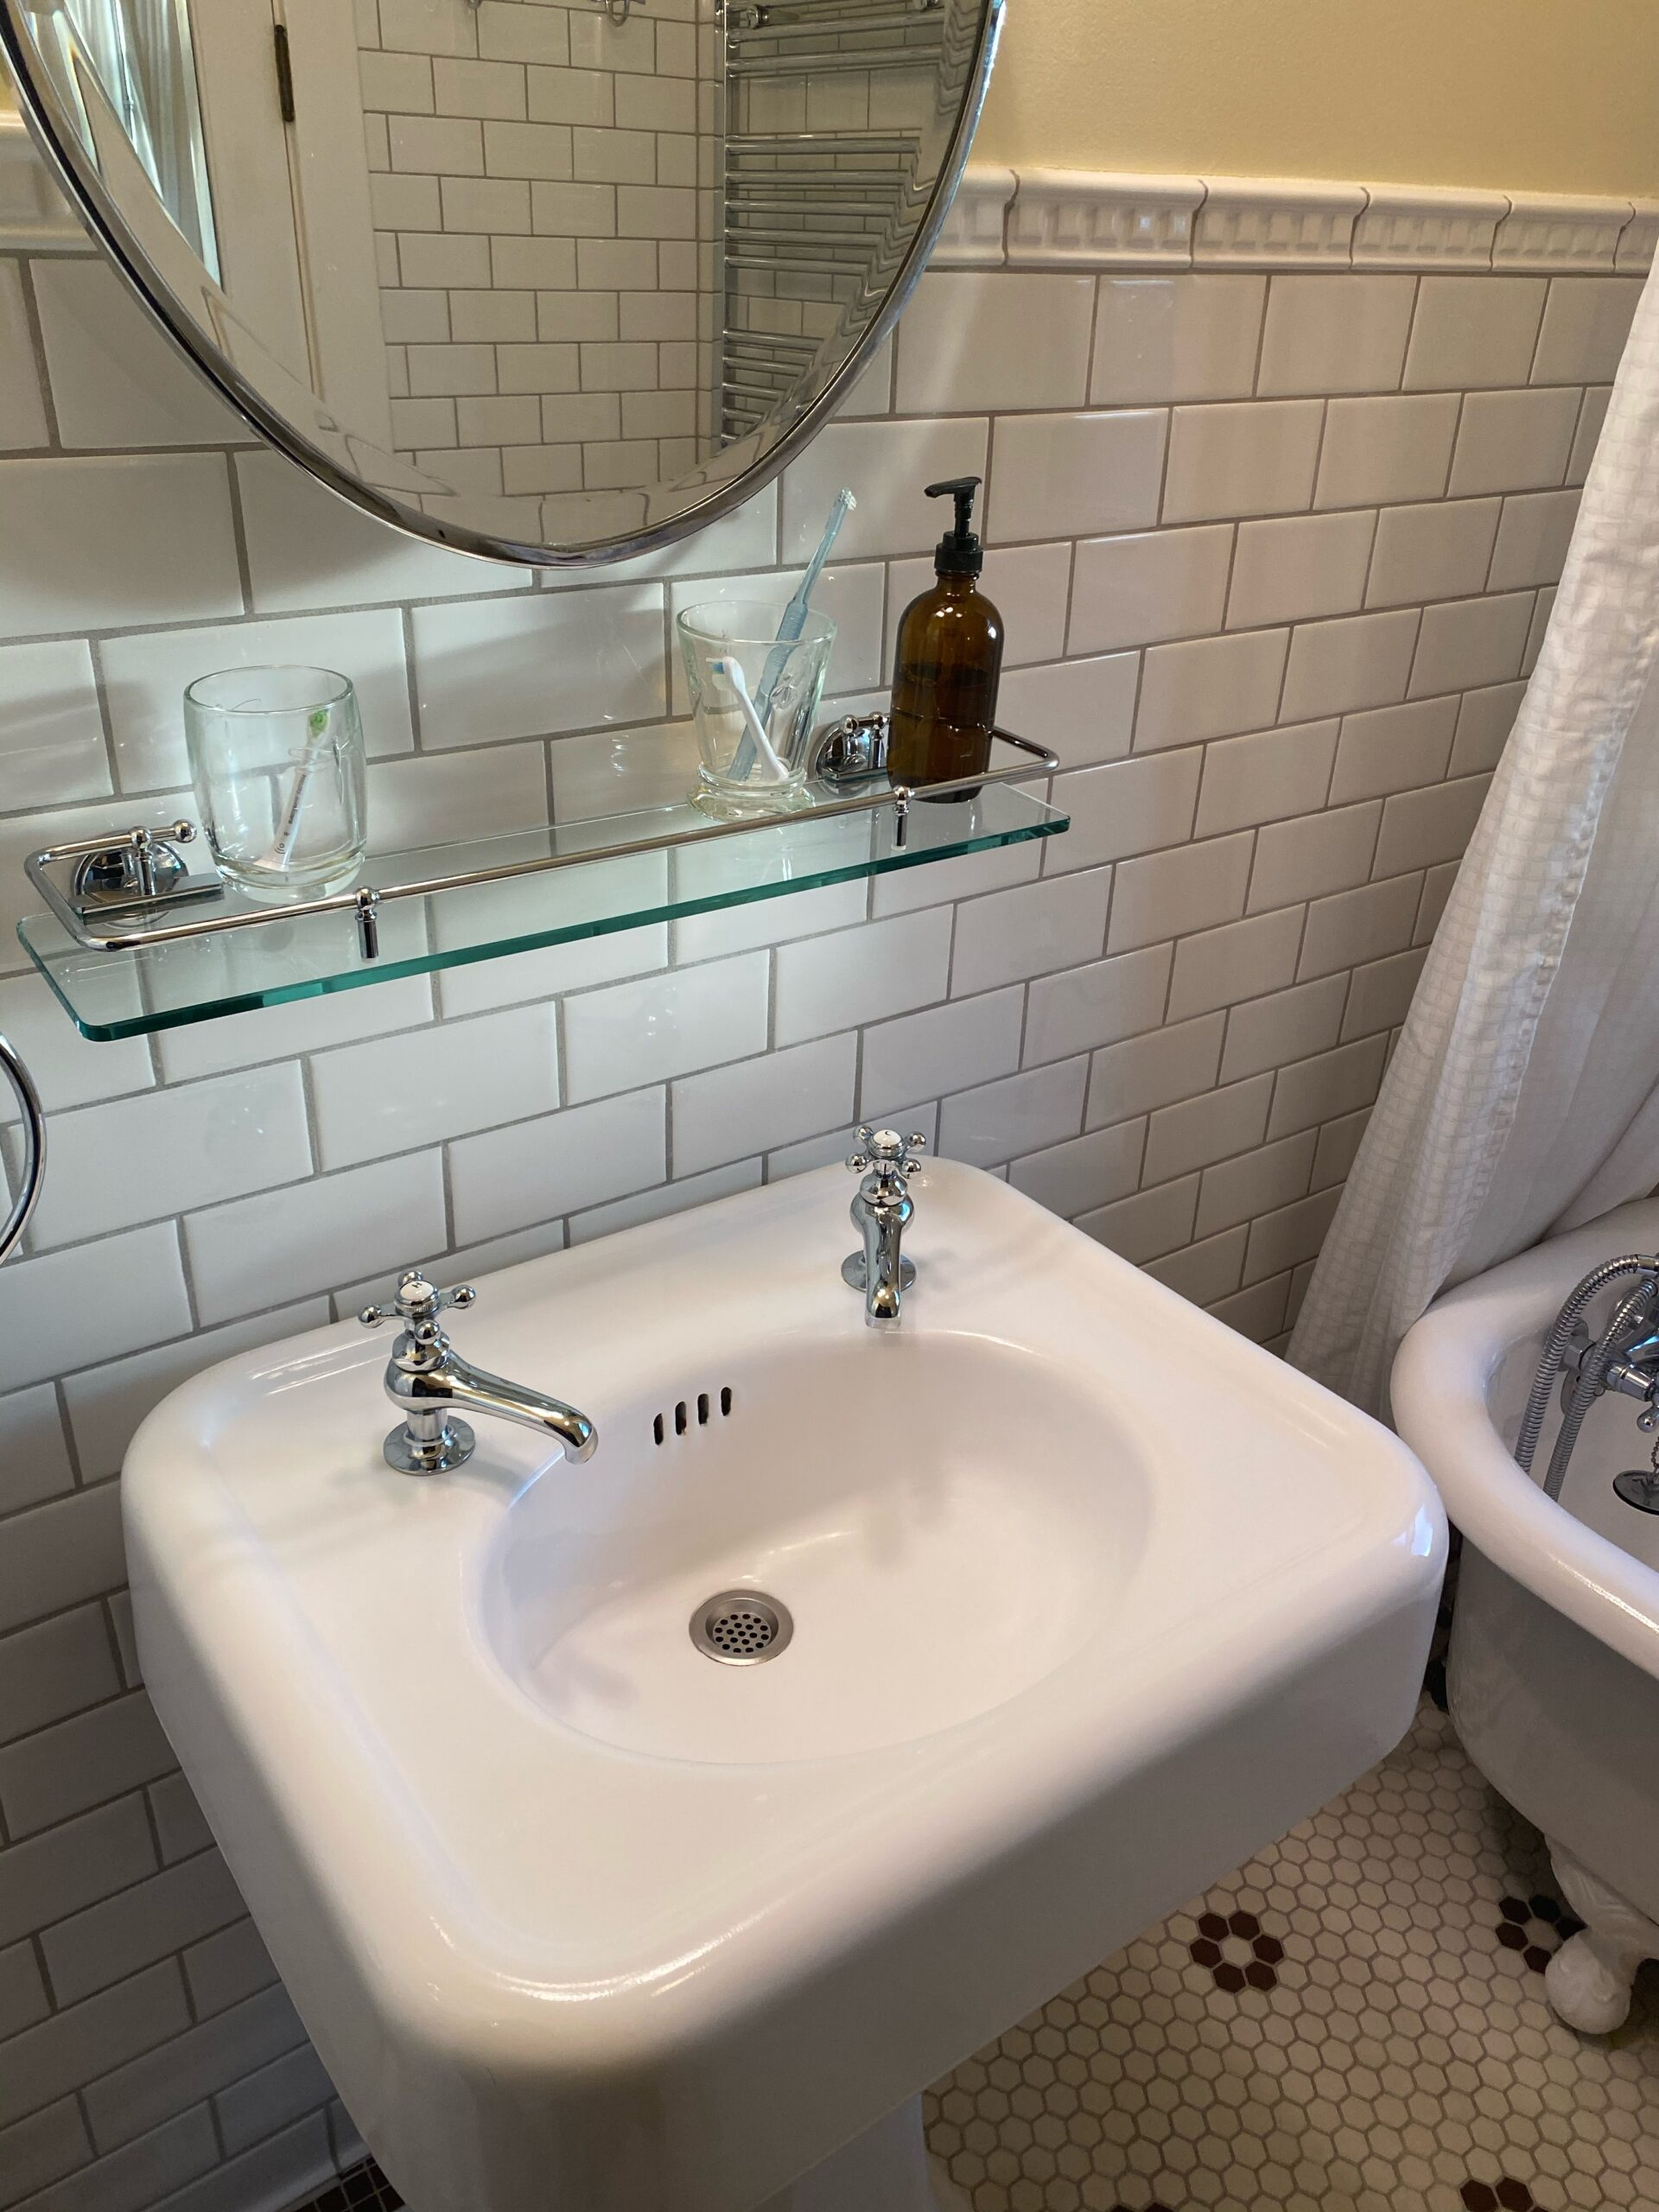 hot and cold replacement taps in vintage bathroom